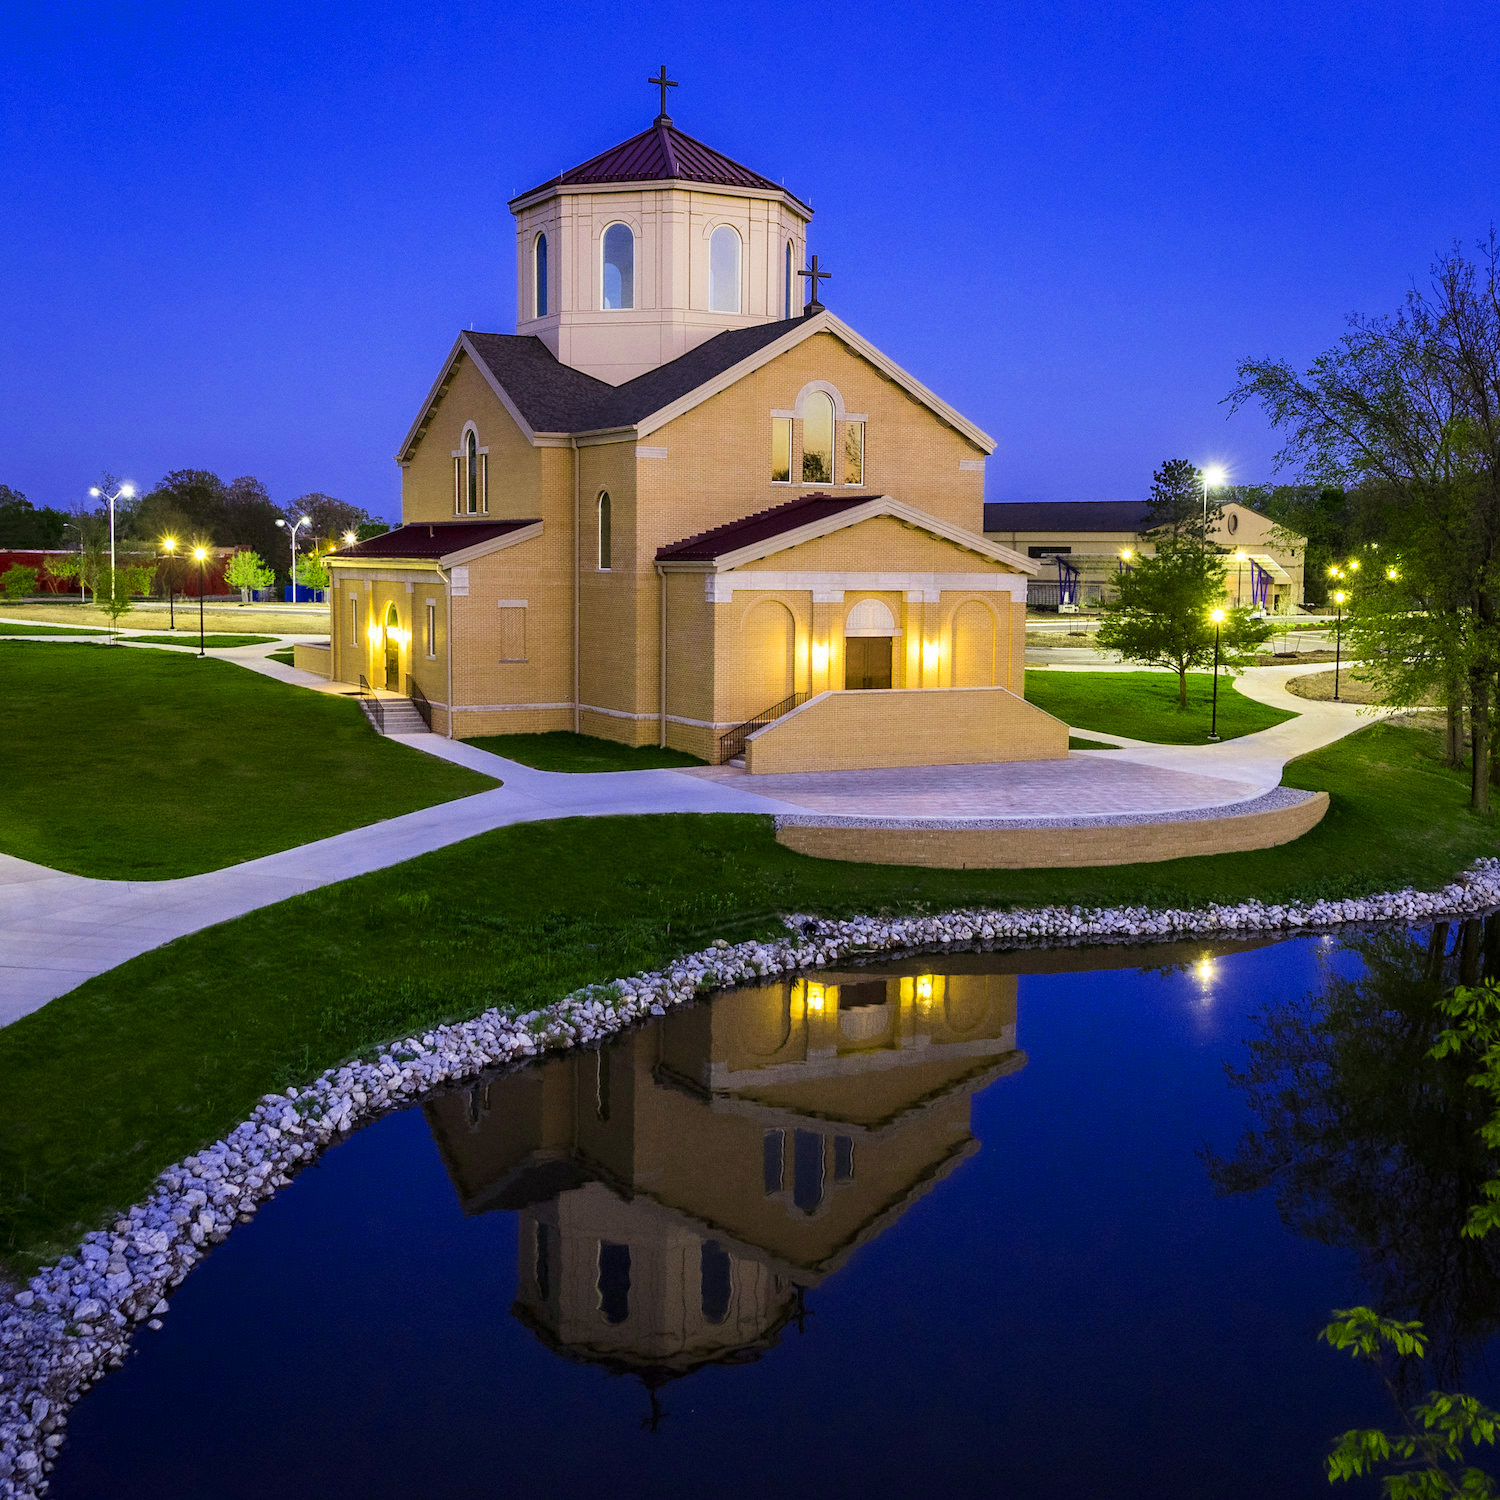 Architectural Exterior, Place of Worship, Church, Chapel, Exterior Dusk